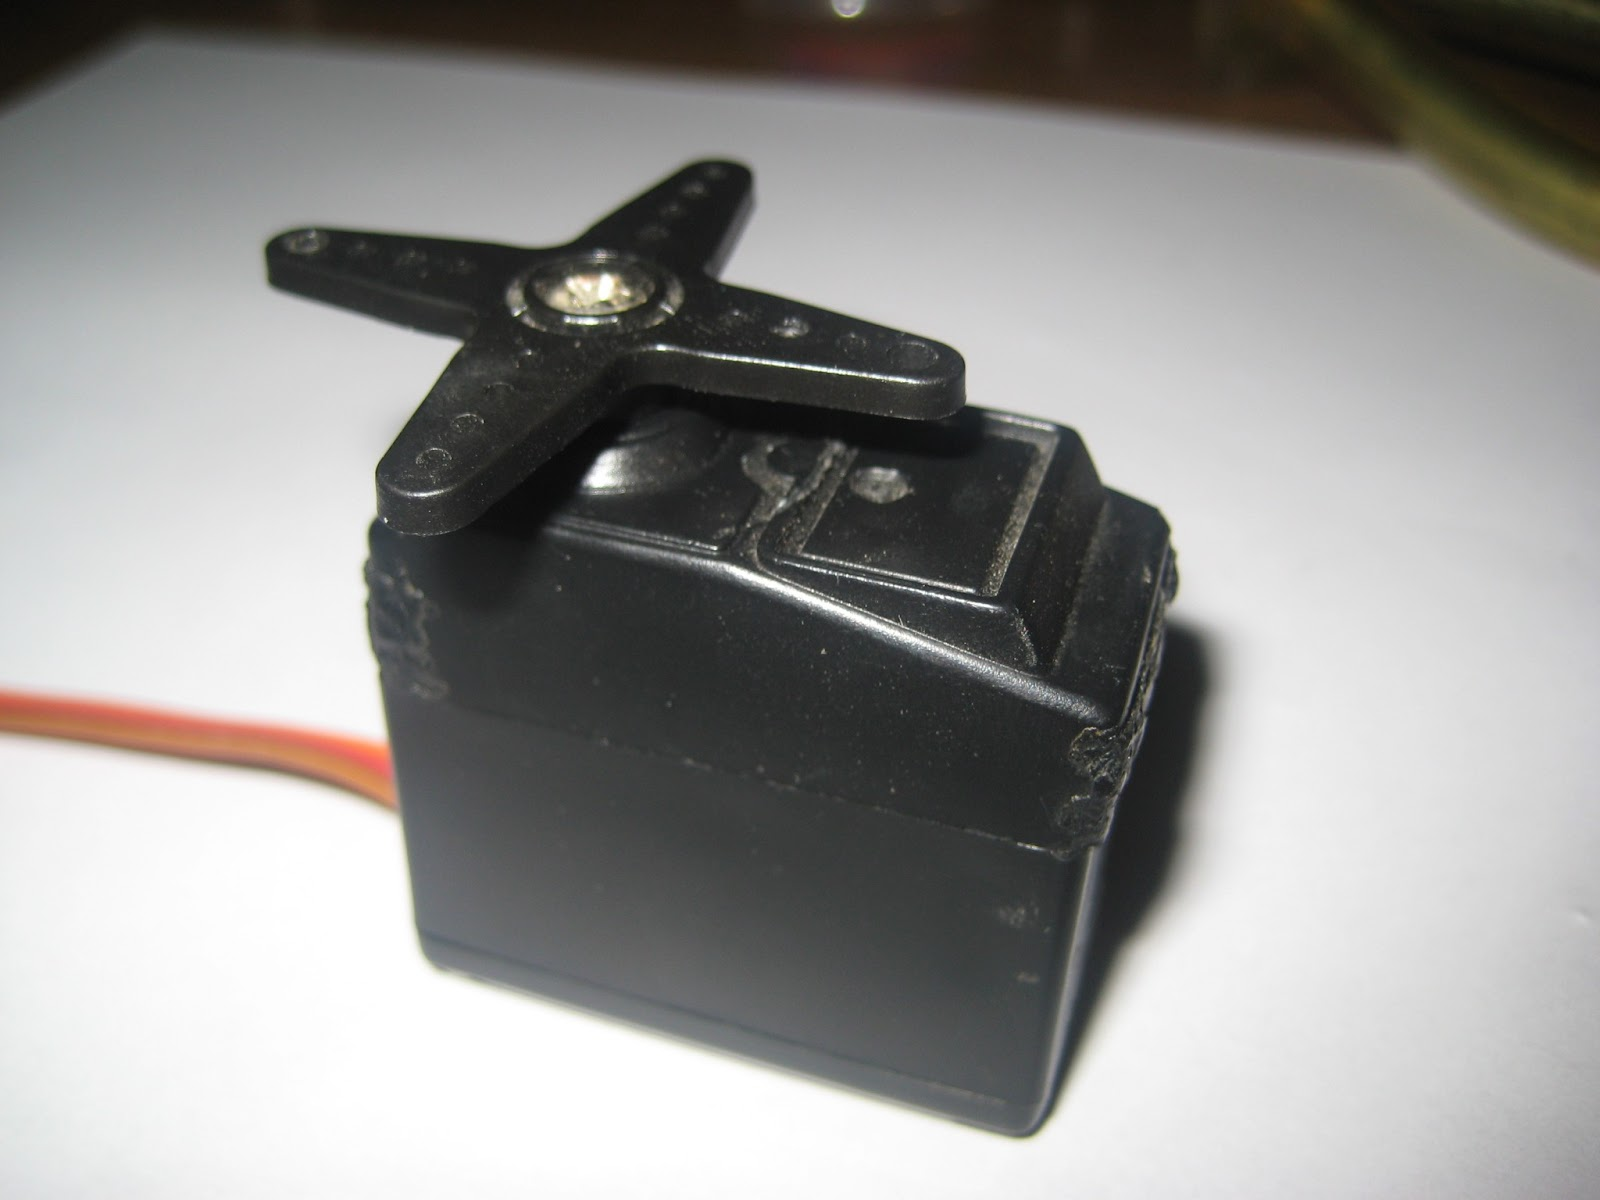 Techniks Blog Hacking A Servo Part I Wiring Red Black White It Tipically Has Three Wires Ground Vcc And Pulse Usually